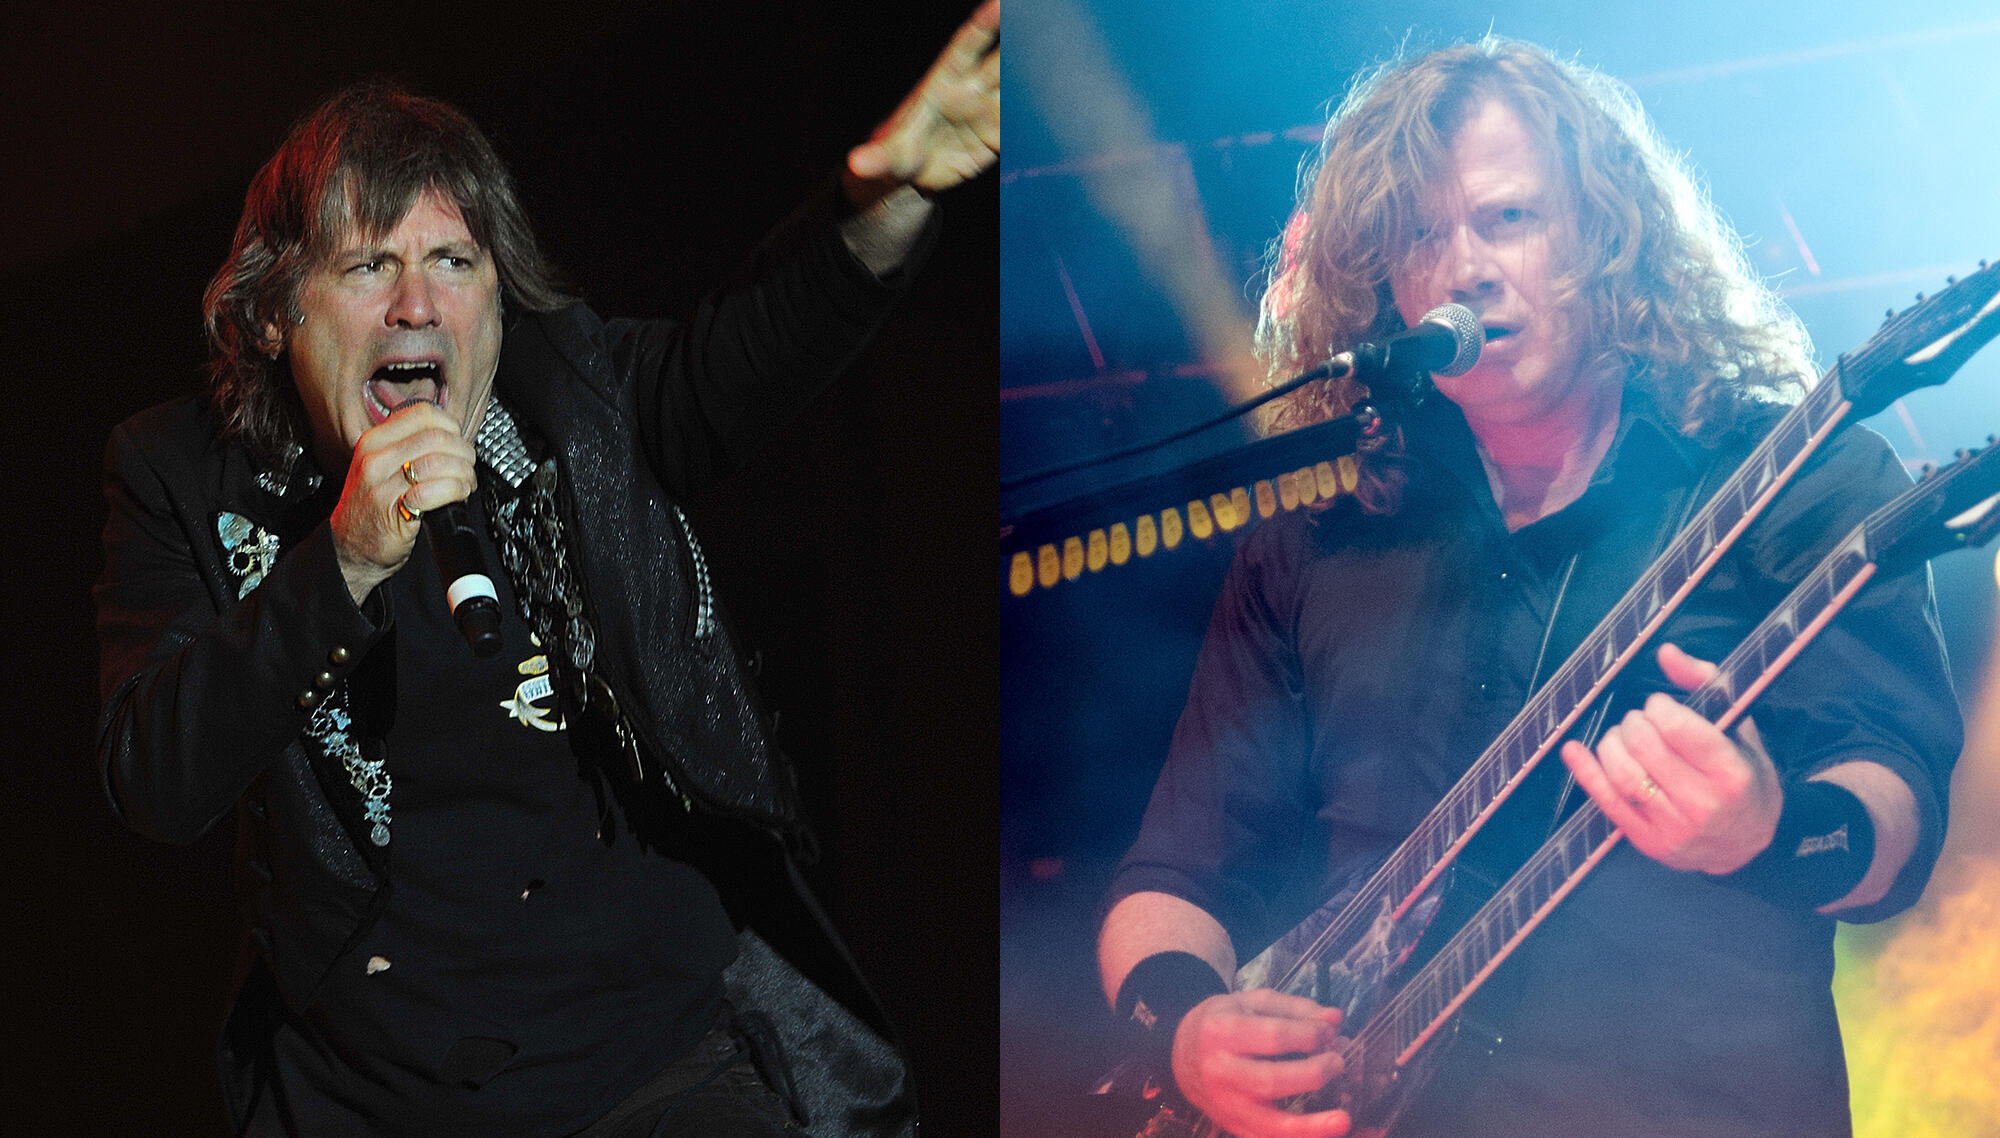 Dave Mustaine Bonded With Bruce Dickinson After Throat Cancer Ordeal